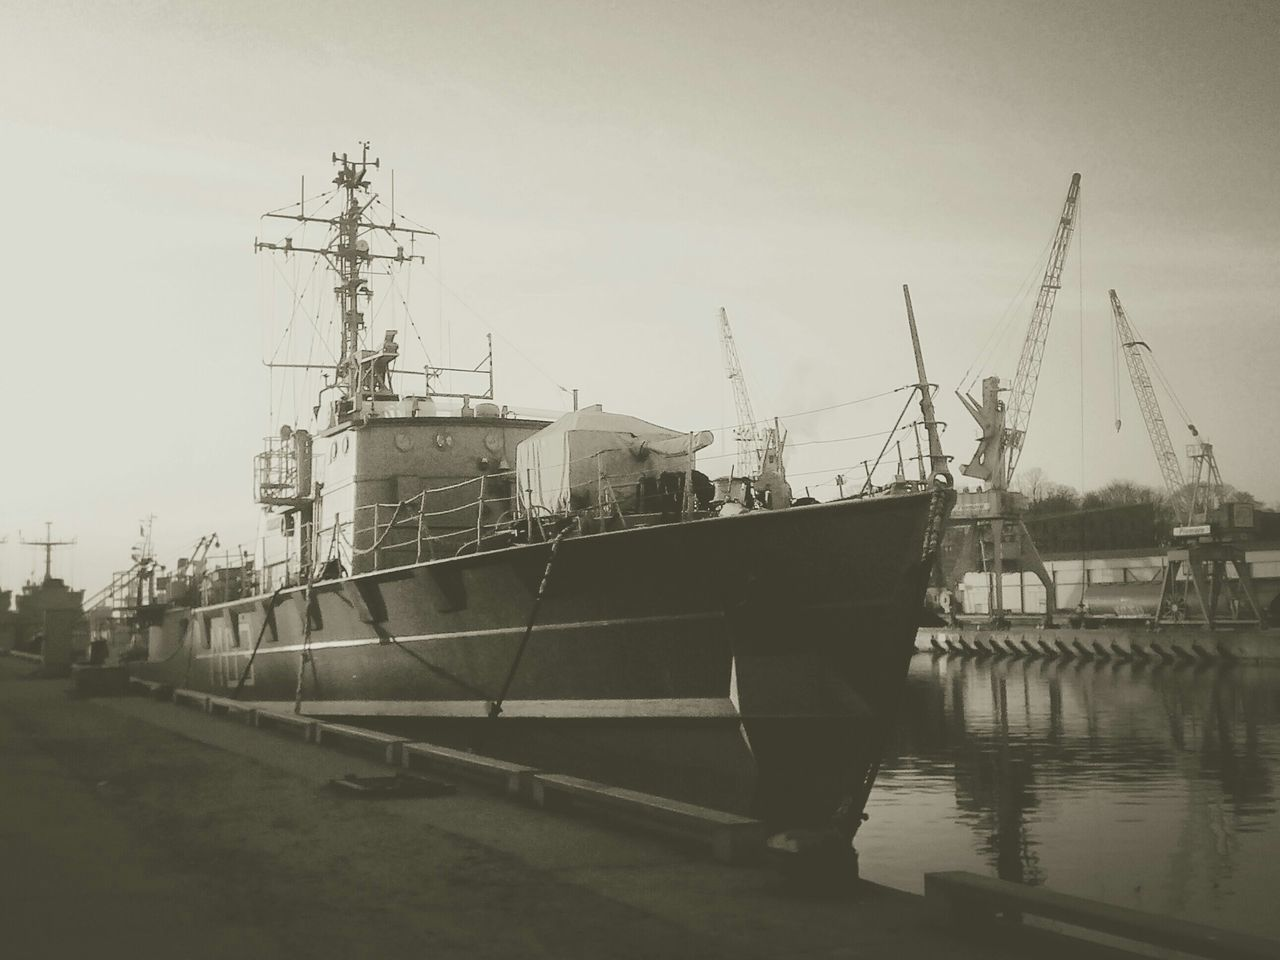 View Of Ship Moored At Commercial Dock Against Sky